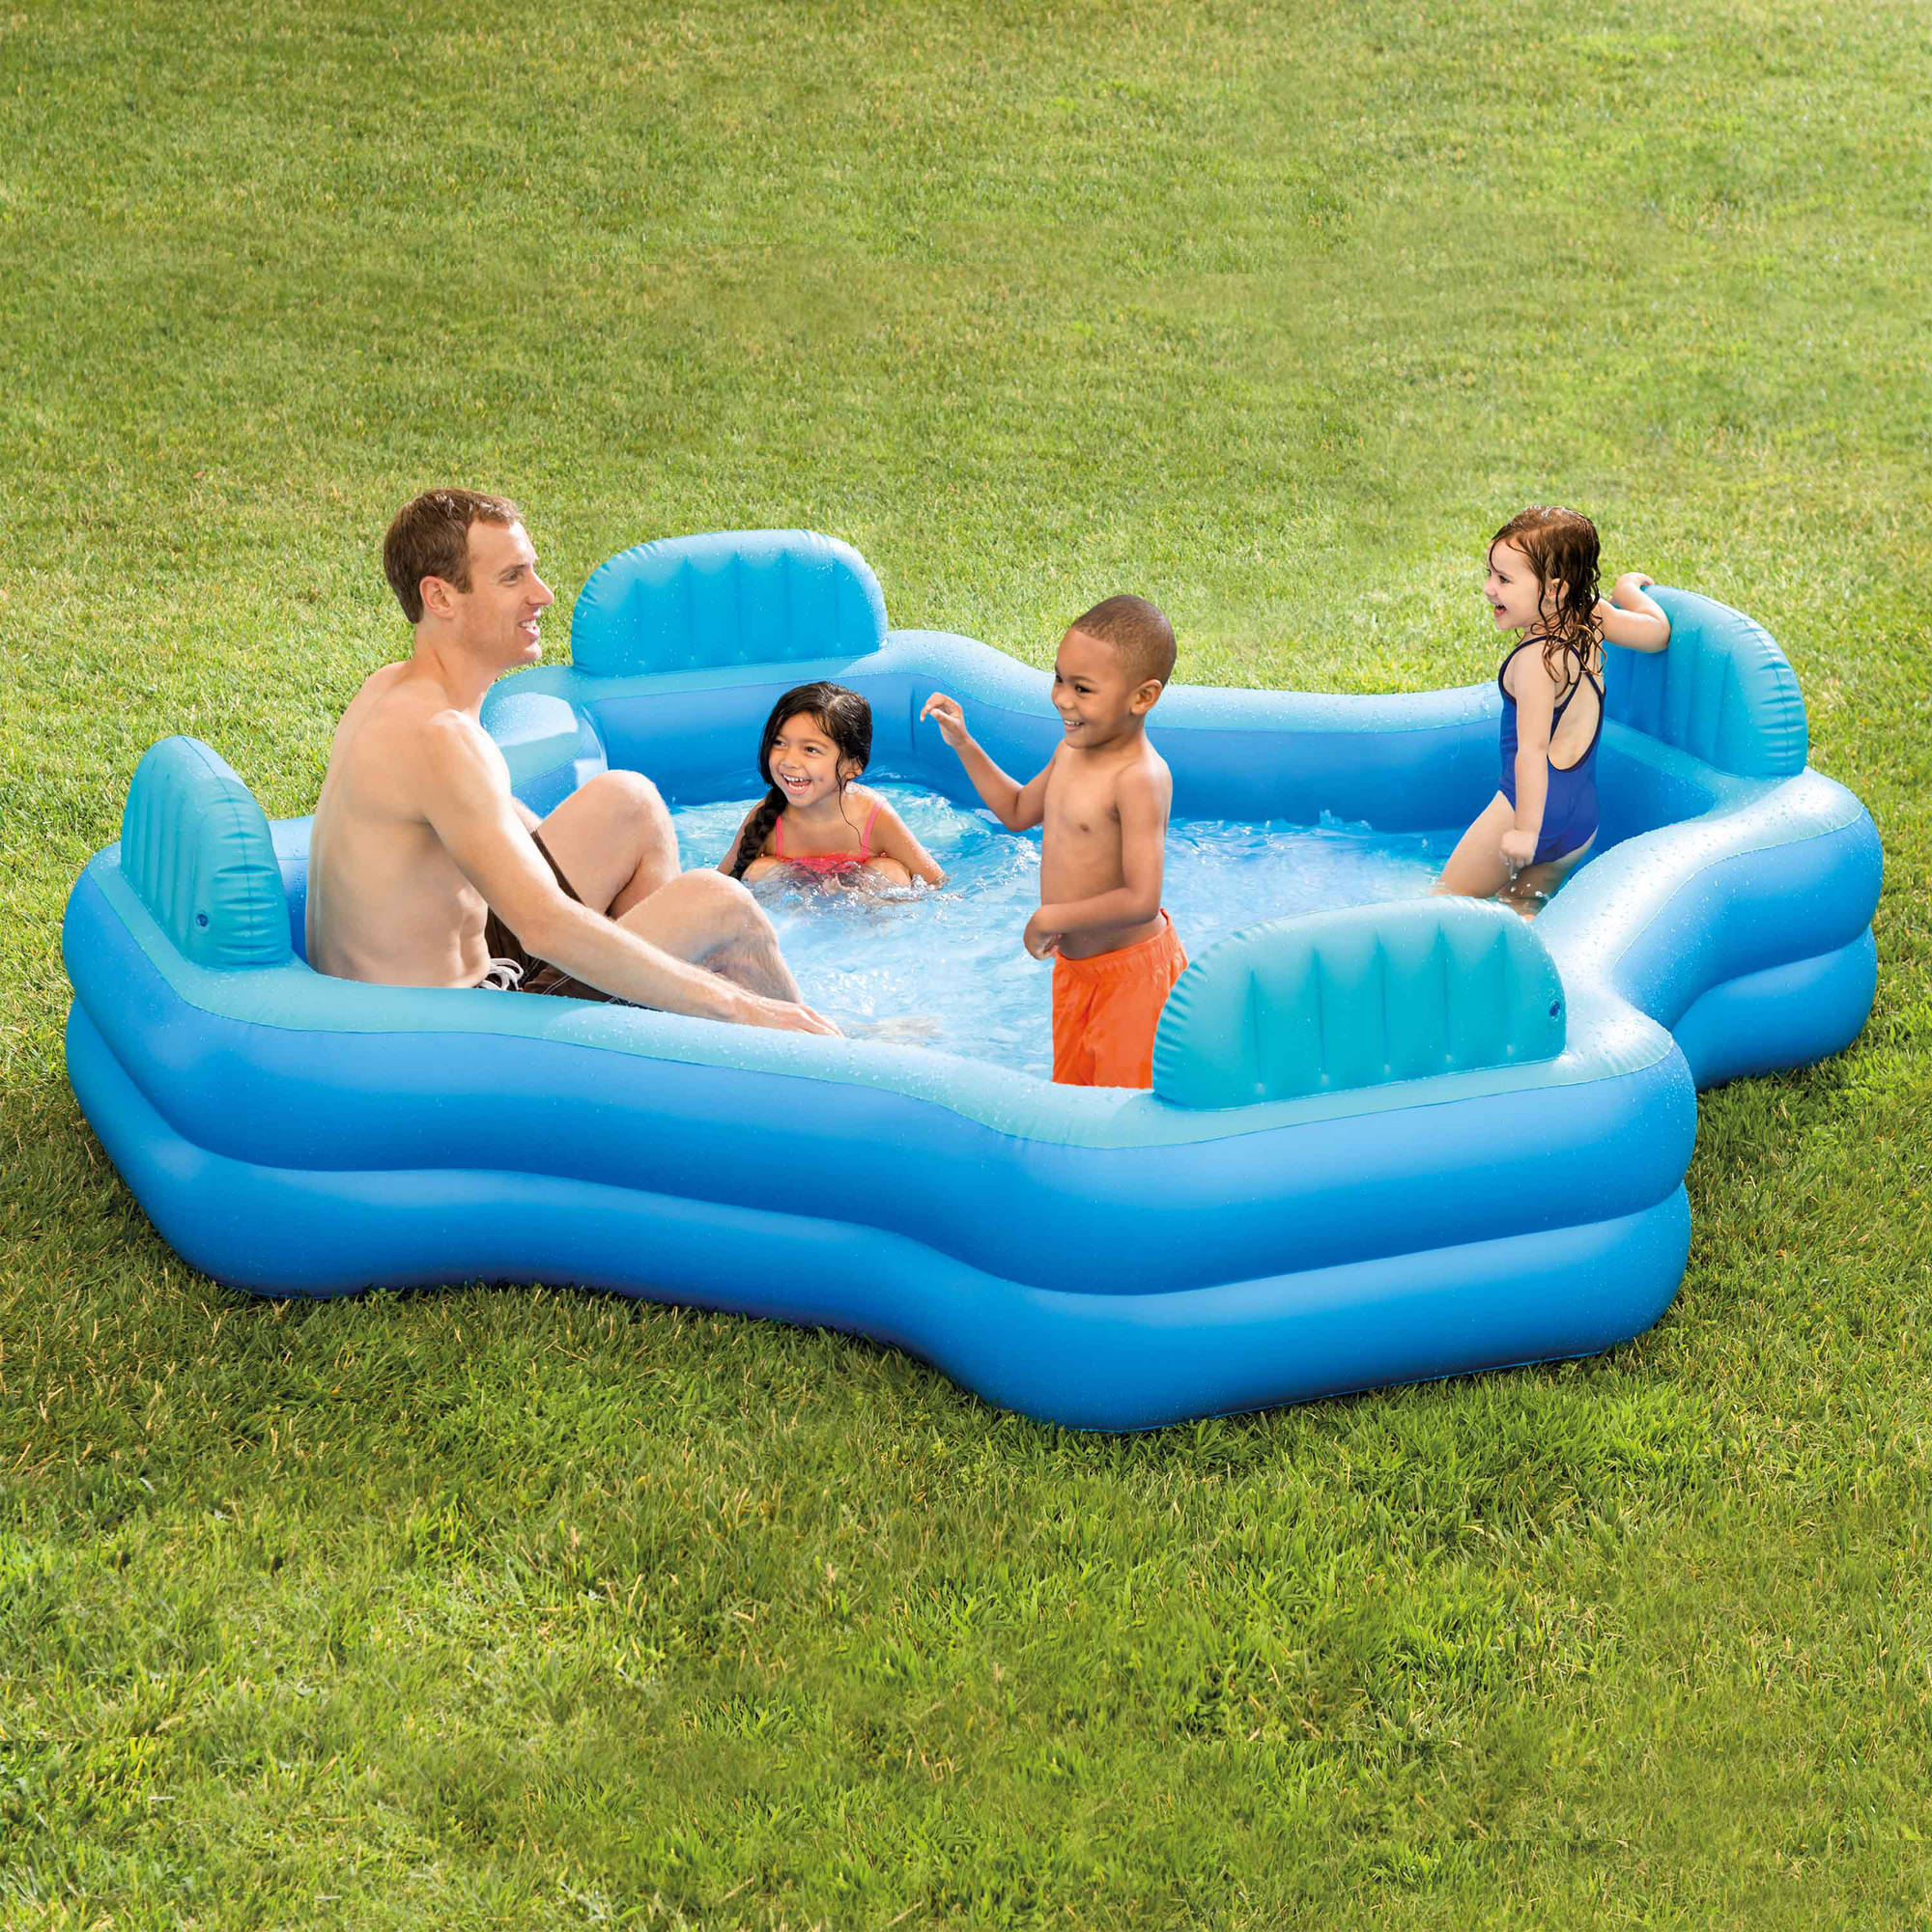 Intex Inflatable Swim Center Family Lounge Pool 105 X 105 X 26